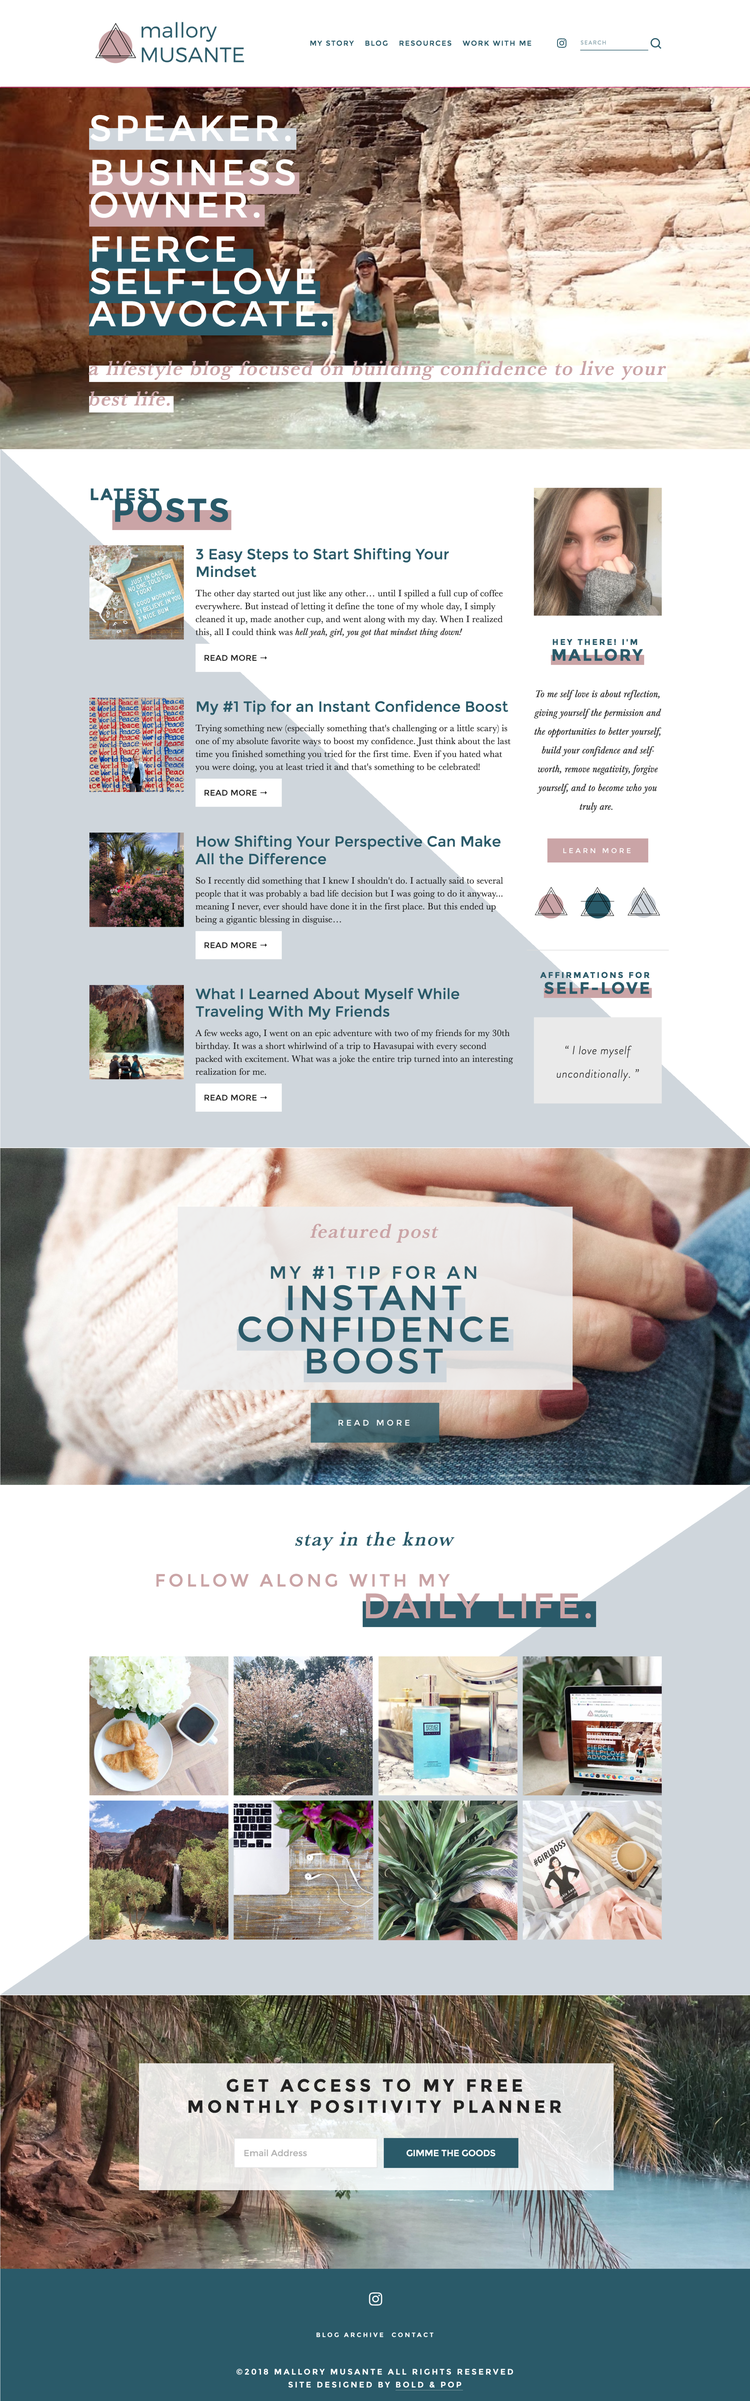 Bold & Pop - Squarespace Website Designers : Why the Brine Family Templates are the Best for Your Squarespace Website